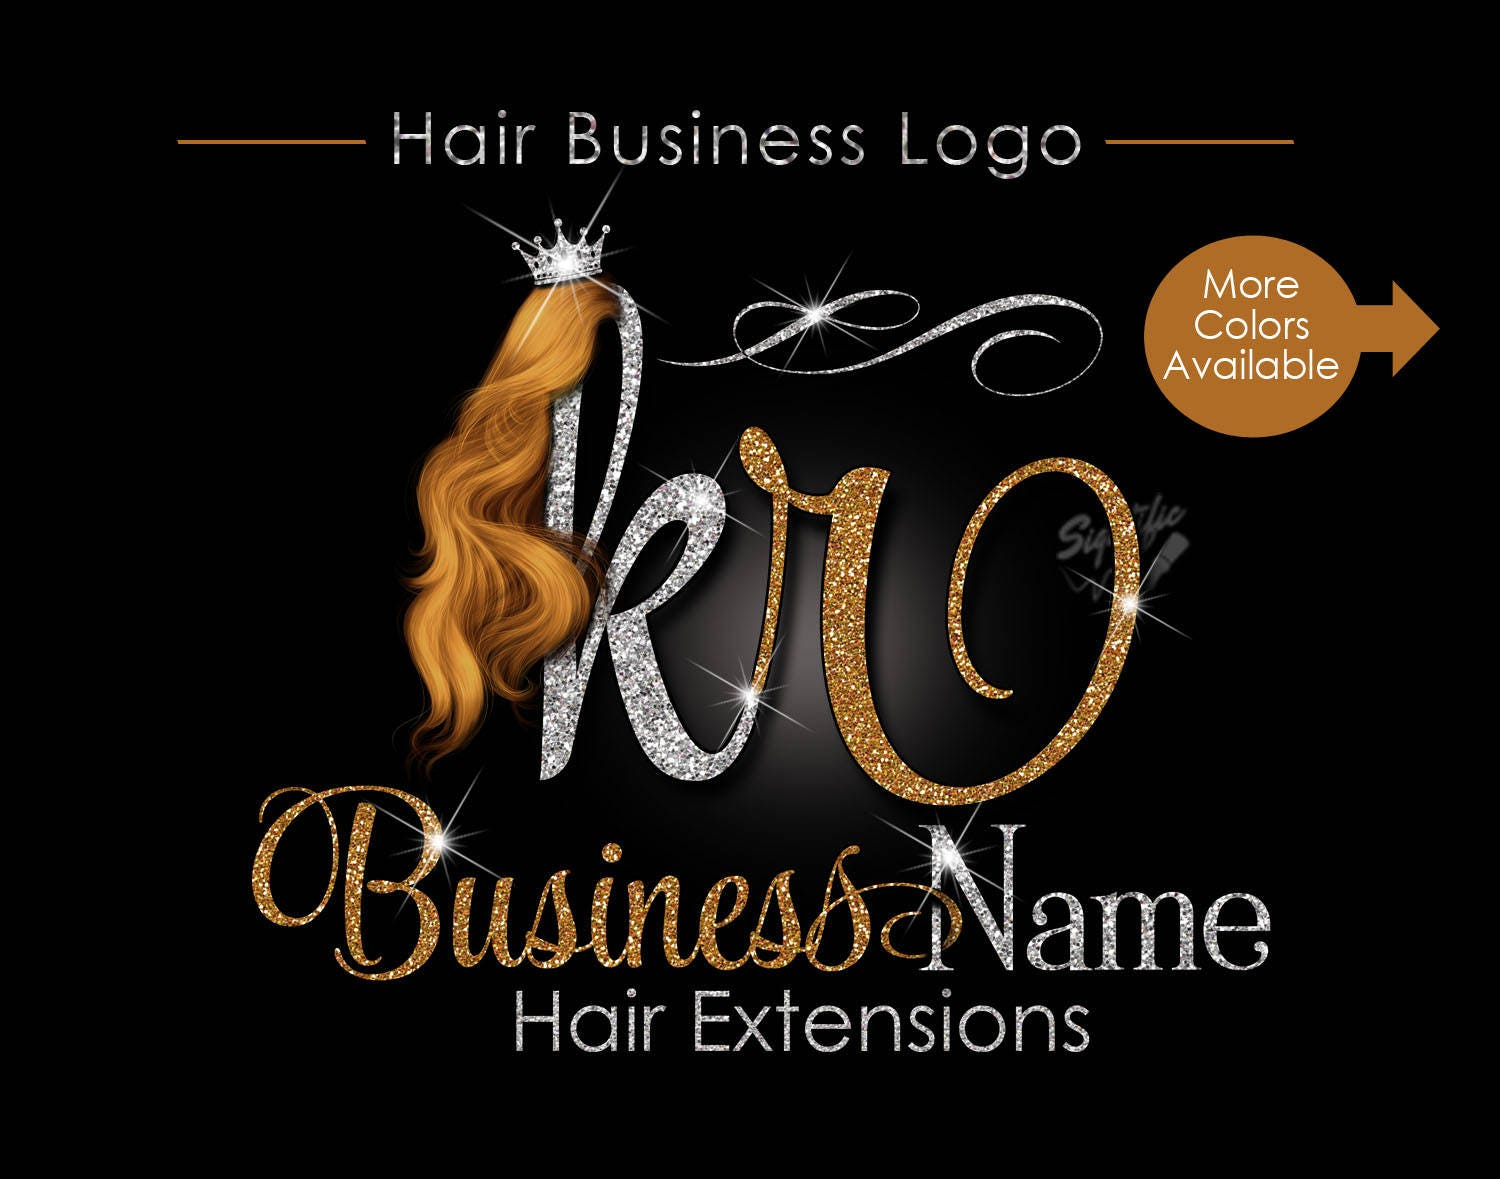 hair extensions business logo glitter logo honey gold hair etsy